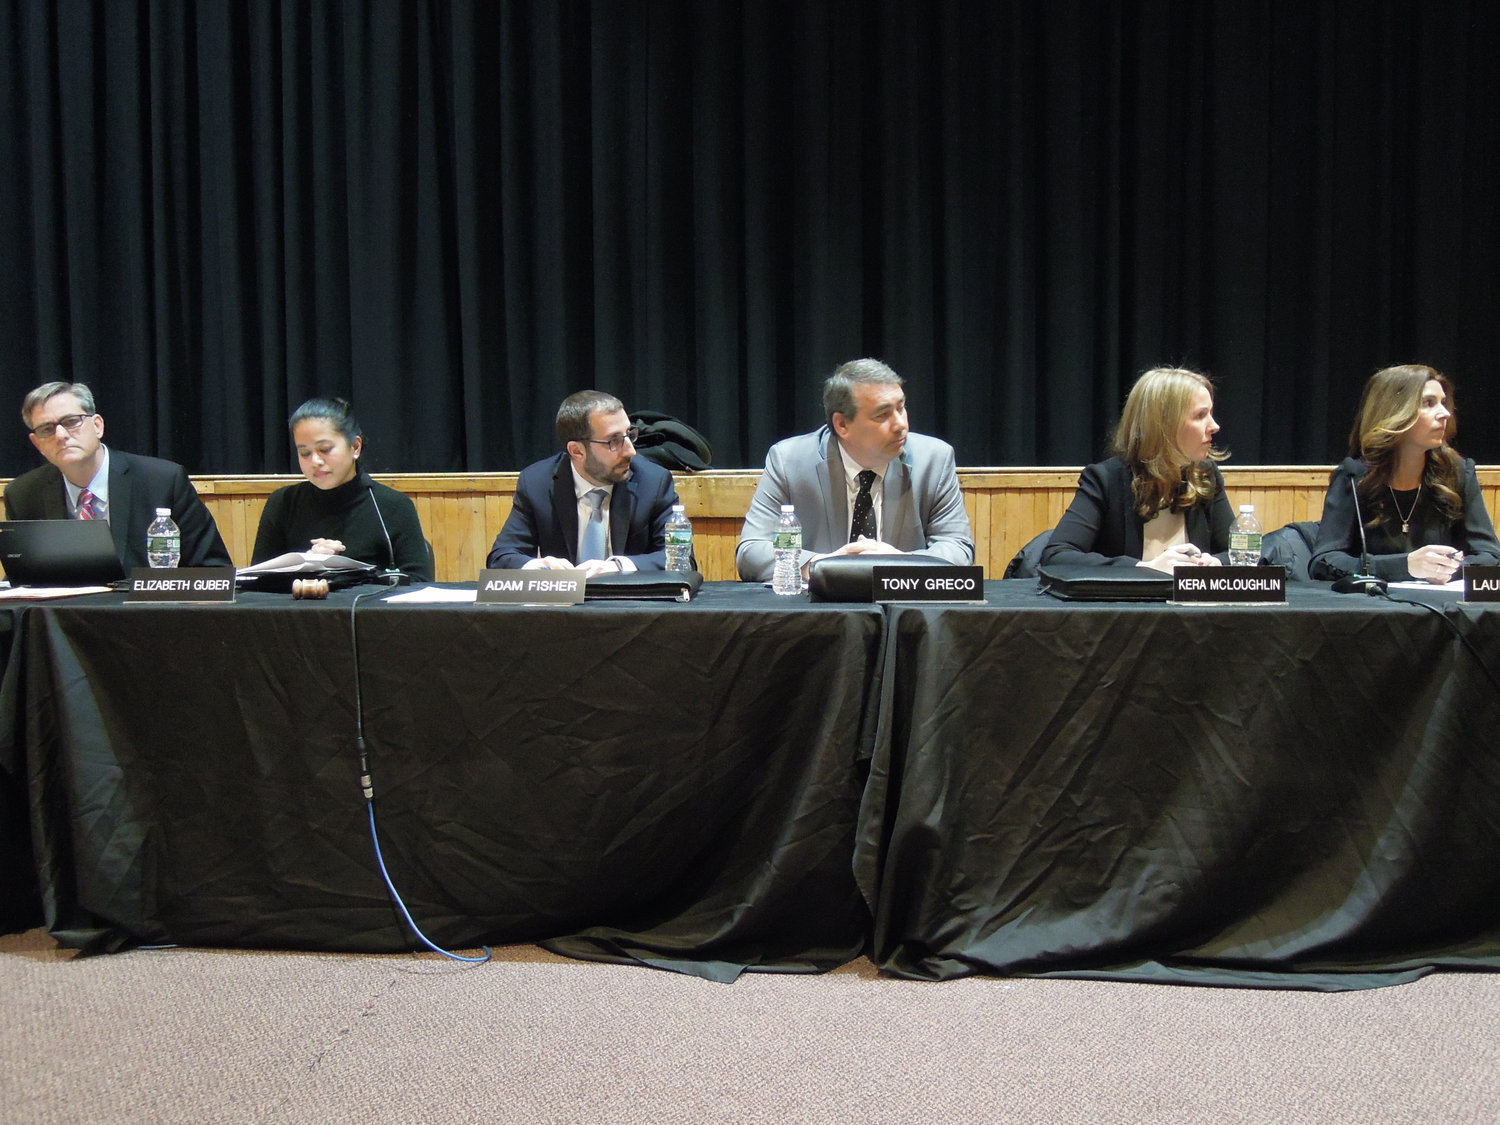 Wantagh Schools Superintendent John McNamara, far left, Board of Education President Elizabeth Gruber, Vice President Adam Fisher and Trustees Tony Greco, Kyra McLoughlin and Laura Reich listened to parents' and children's concerns.